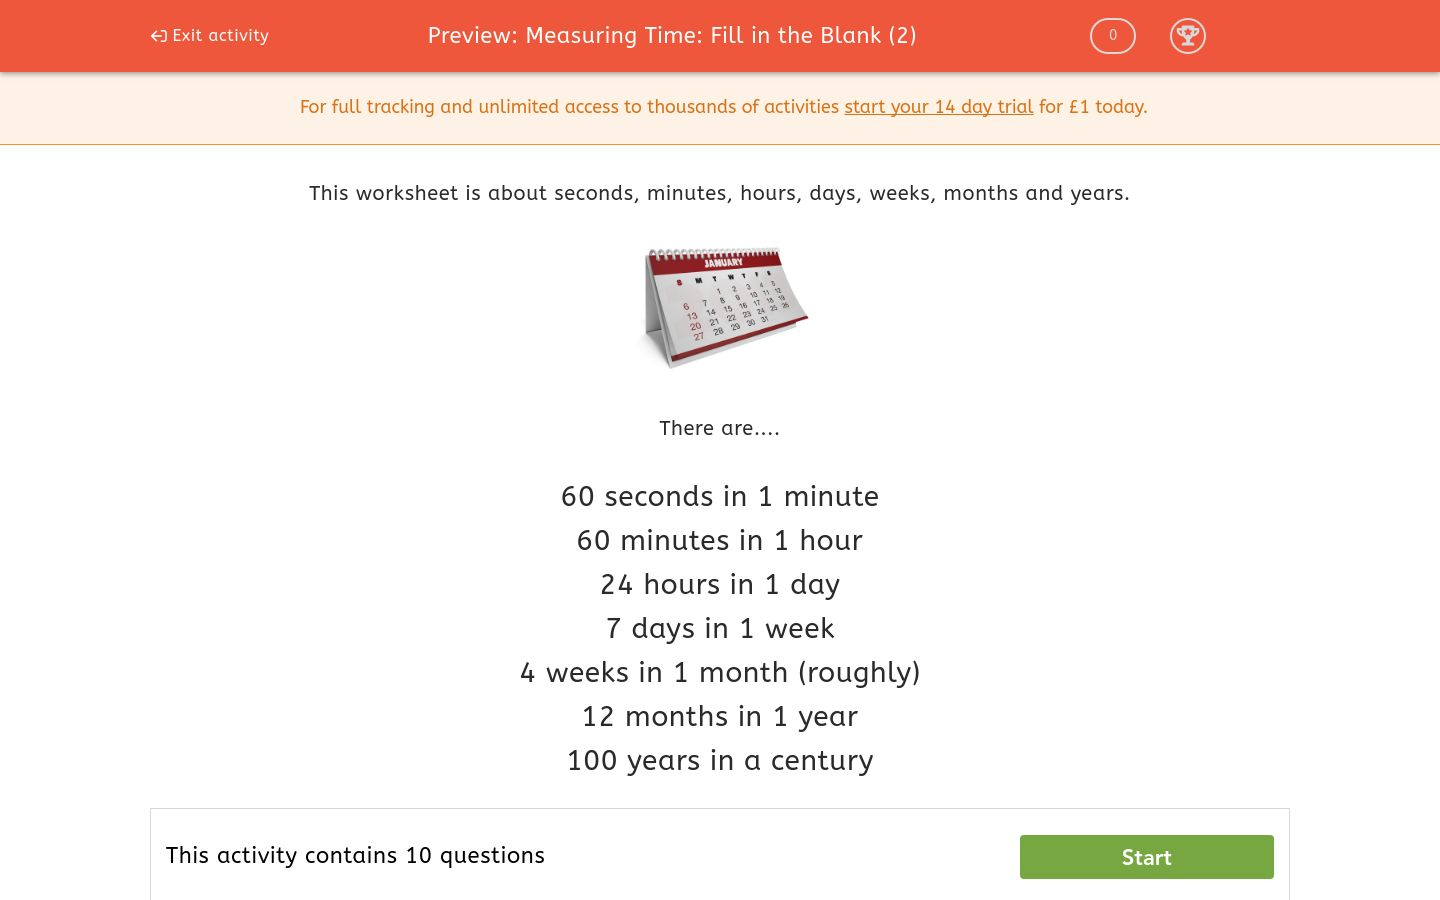 'Measuring Time: Fill in the Blank (2)' worksheet